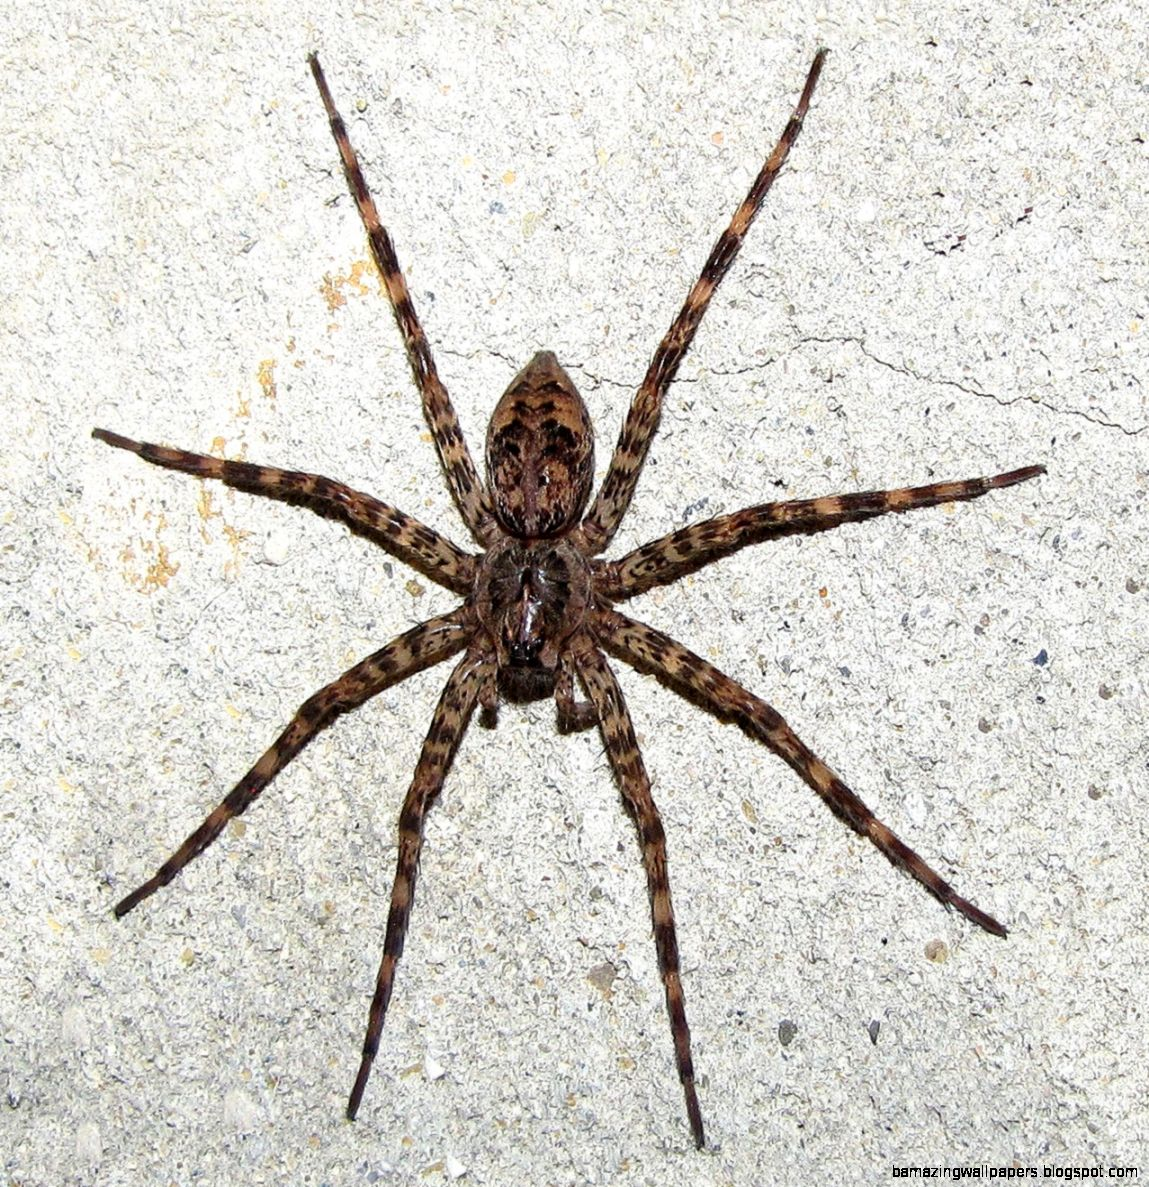 Pictures of Spiders